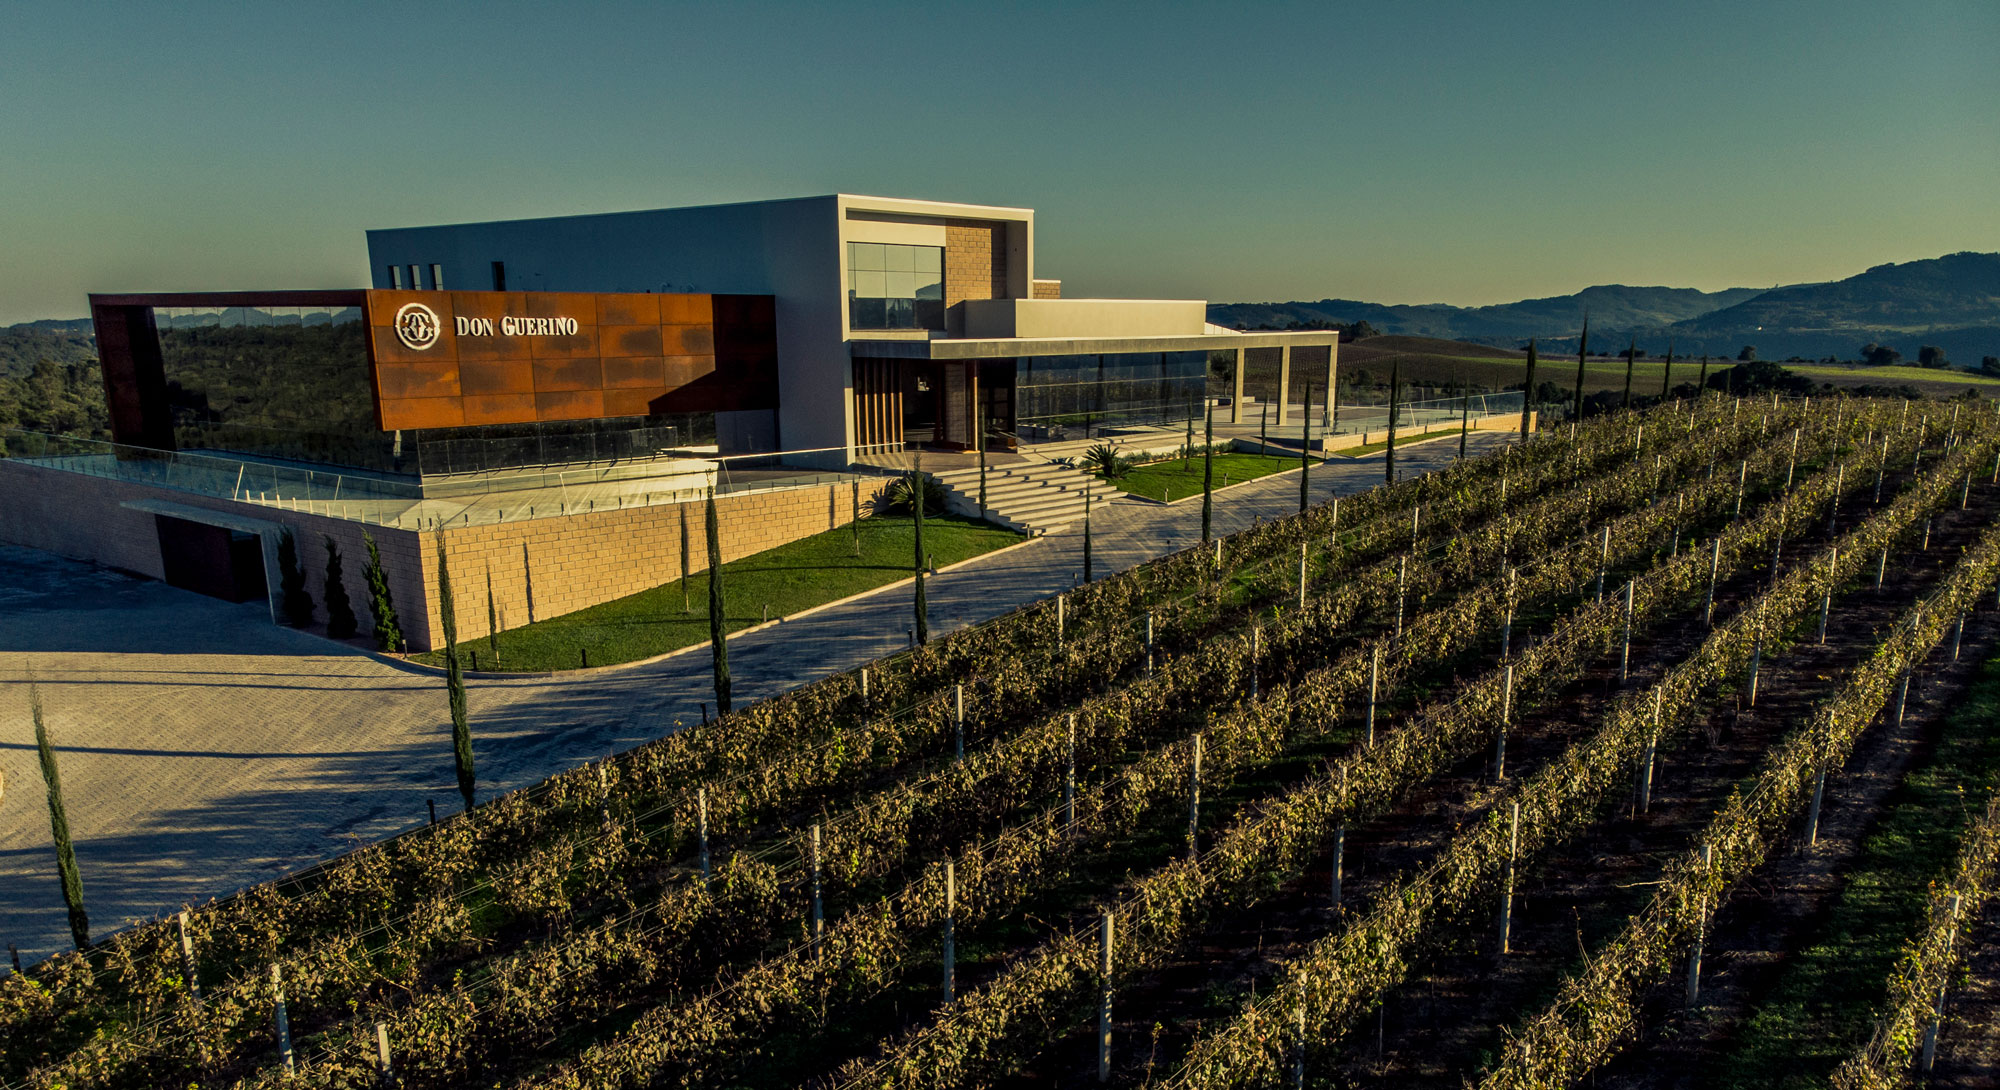 Don Guerino: a modern winery with cutting edge technologies